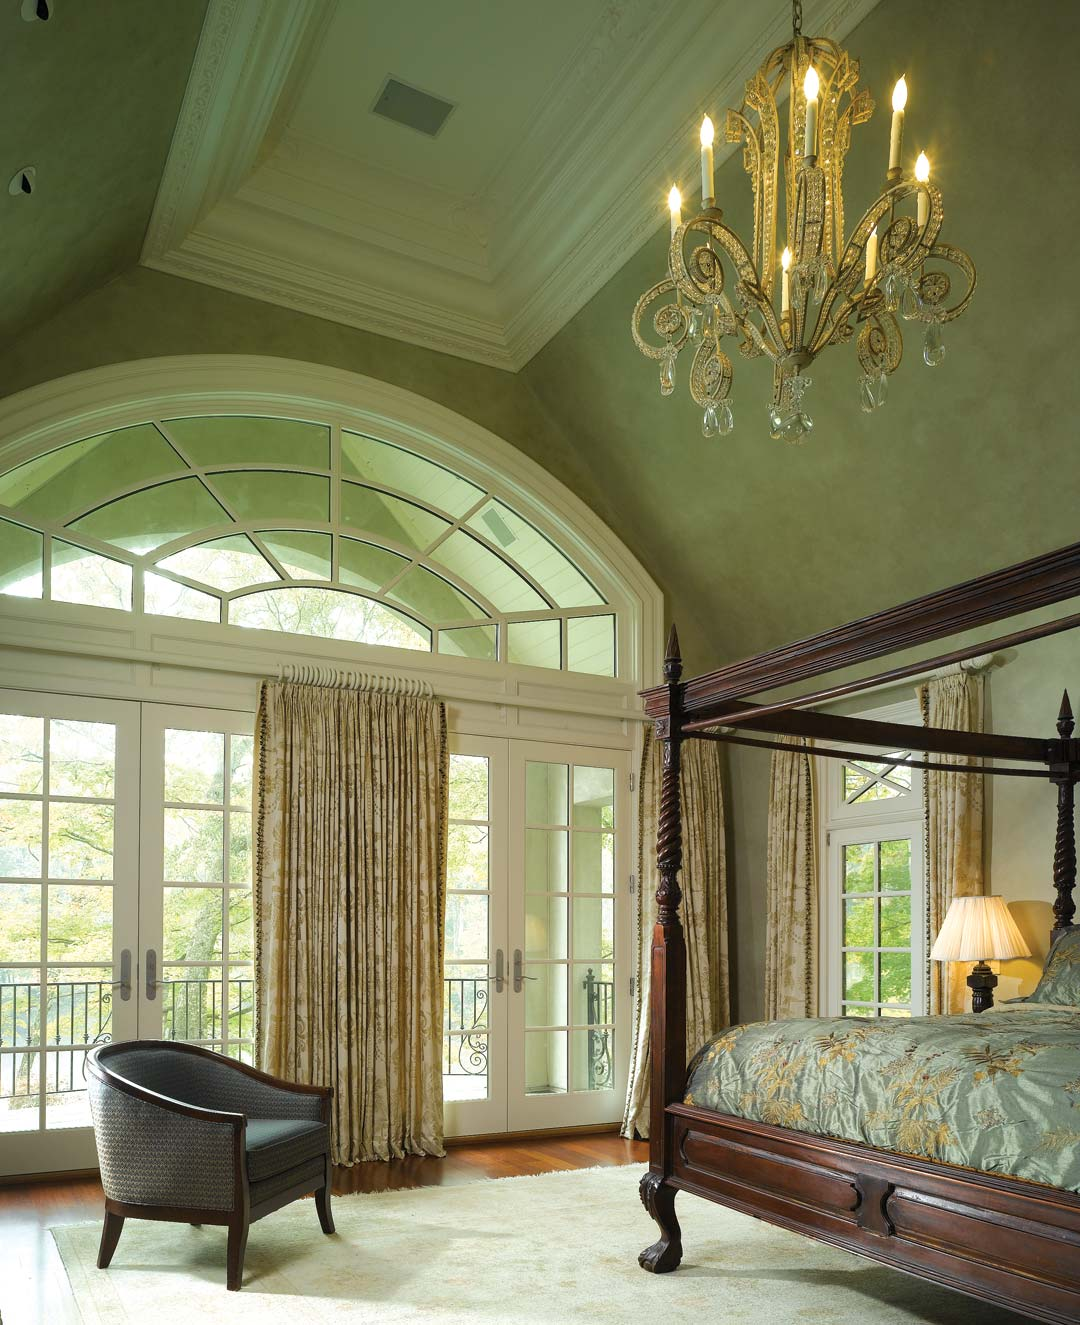 Windows and doors design ideas atlanta home improvement master bedroom with french doors that lead to a deck rubansaba